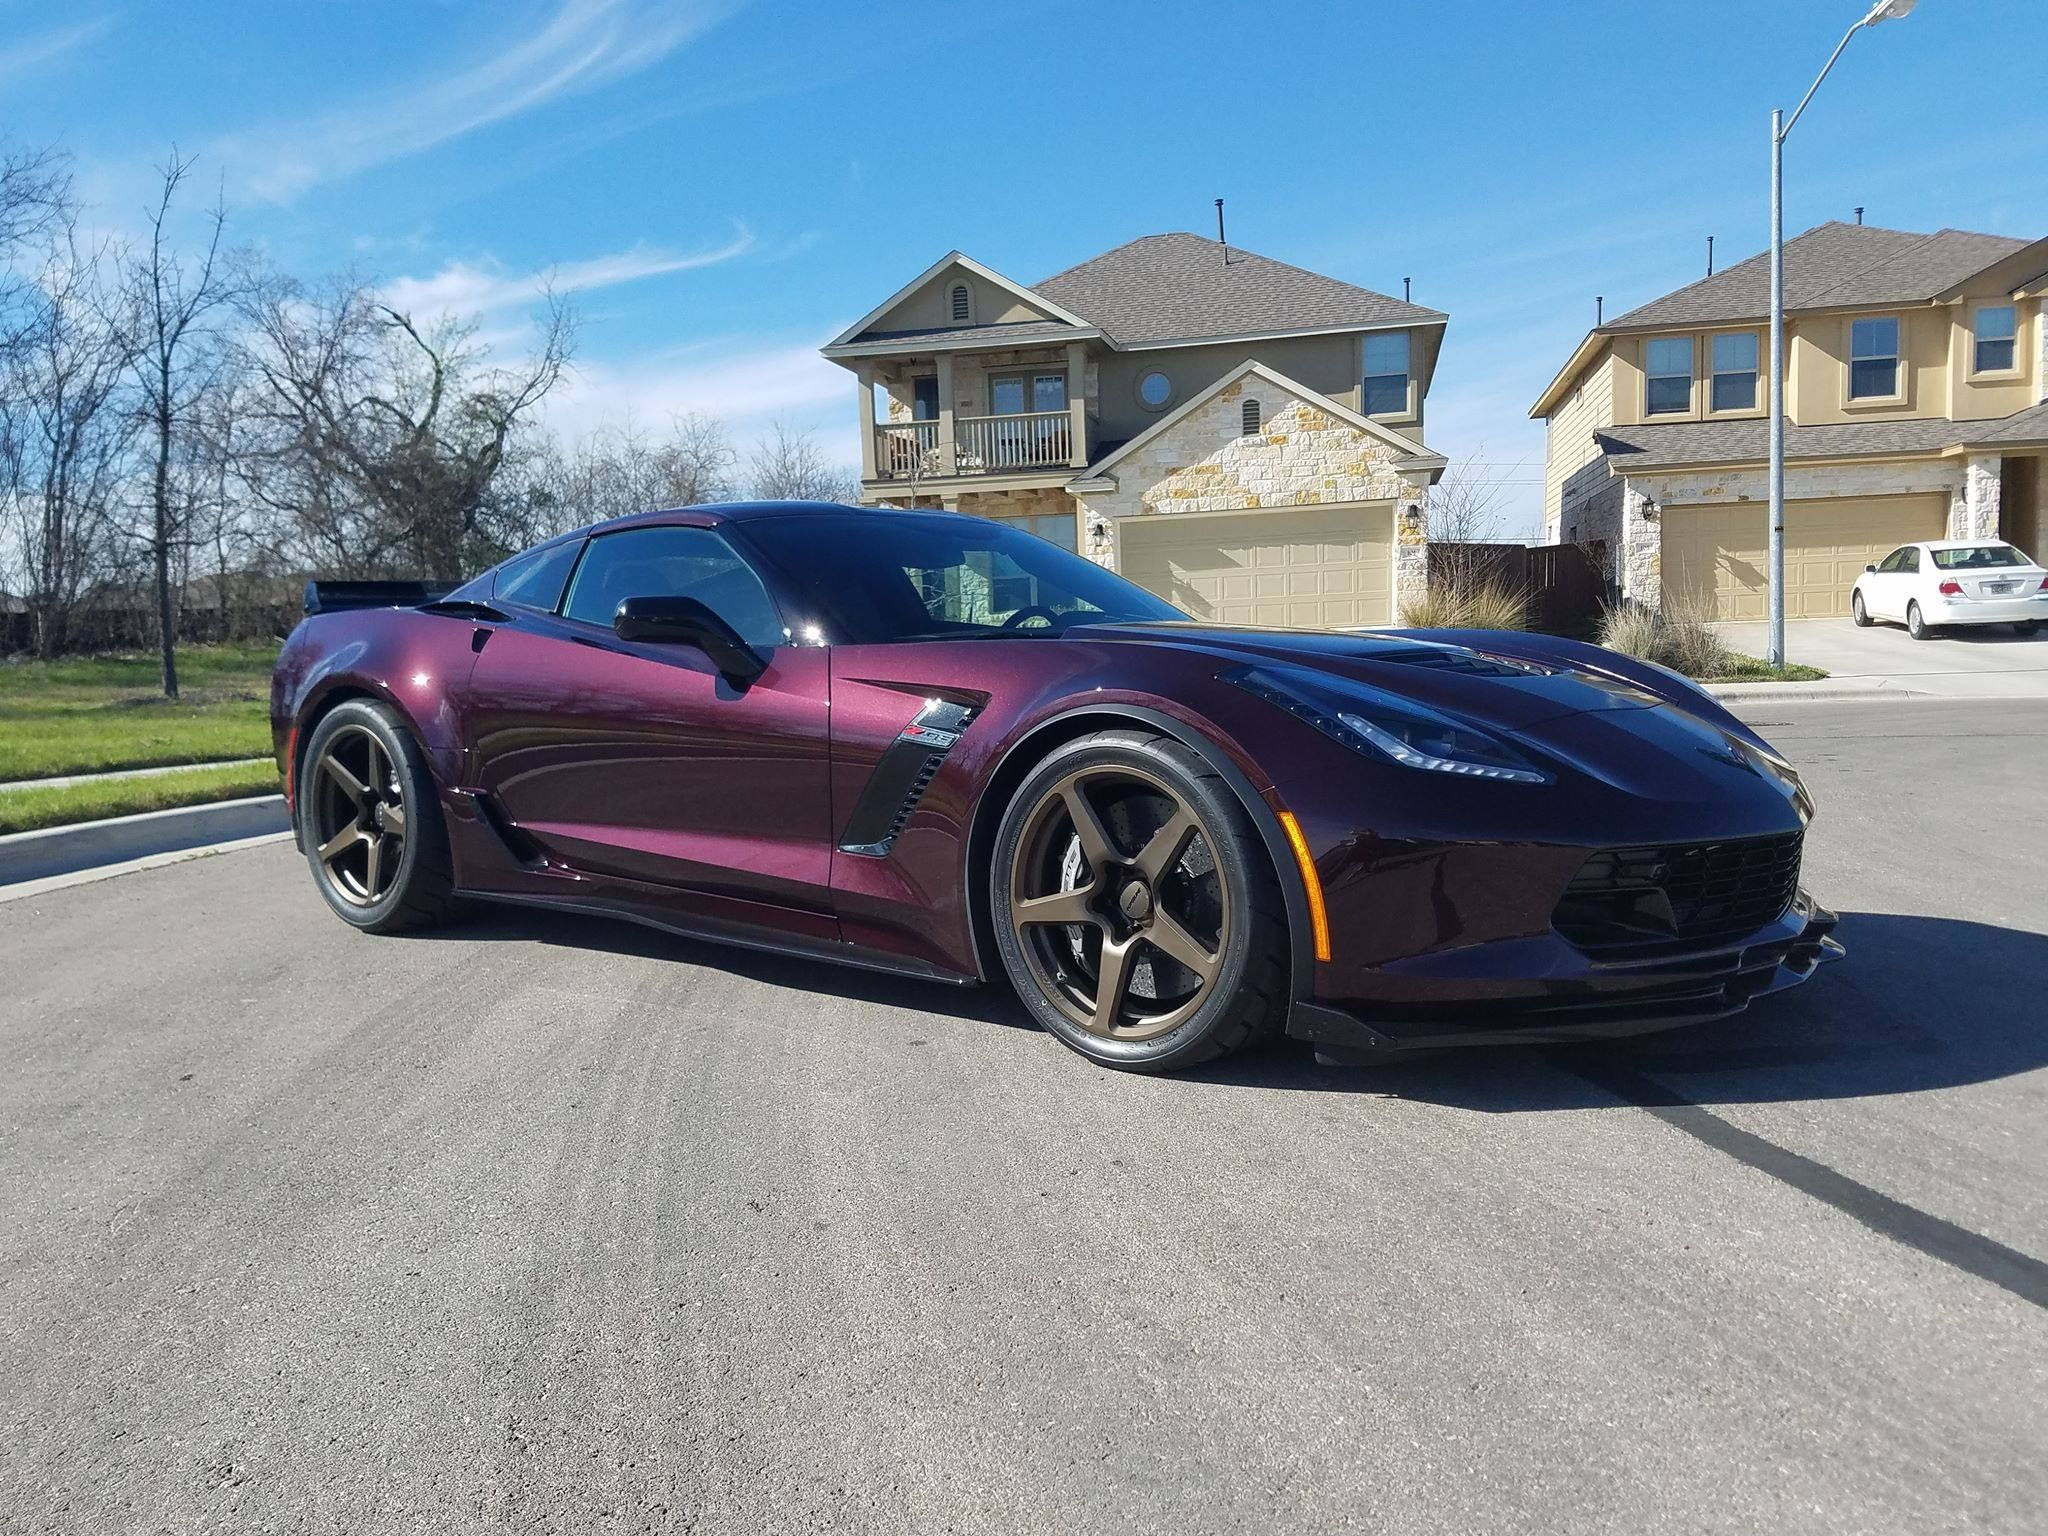 Pin By R Motor On Paint Schemes Ac Cobras And More Pinterest C7 Corvette Painted Fuse Box Cover Chris Neals Latest Toy Is This Black Rose Z06 Z07